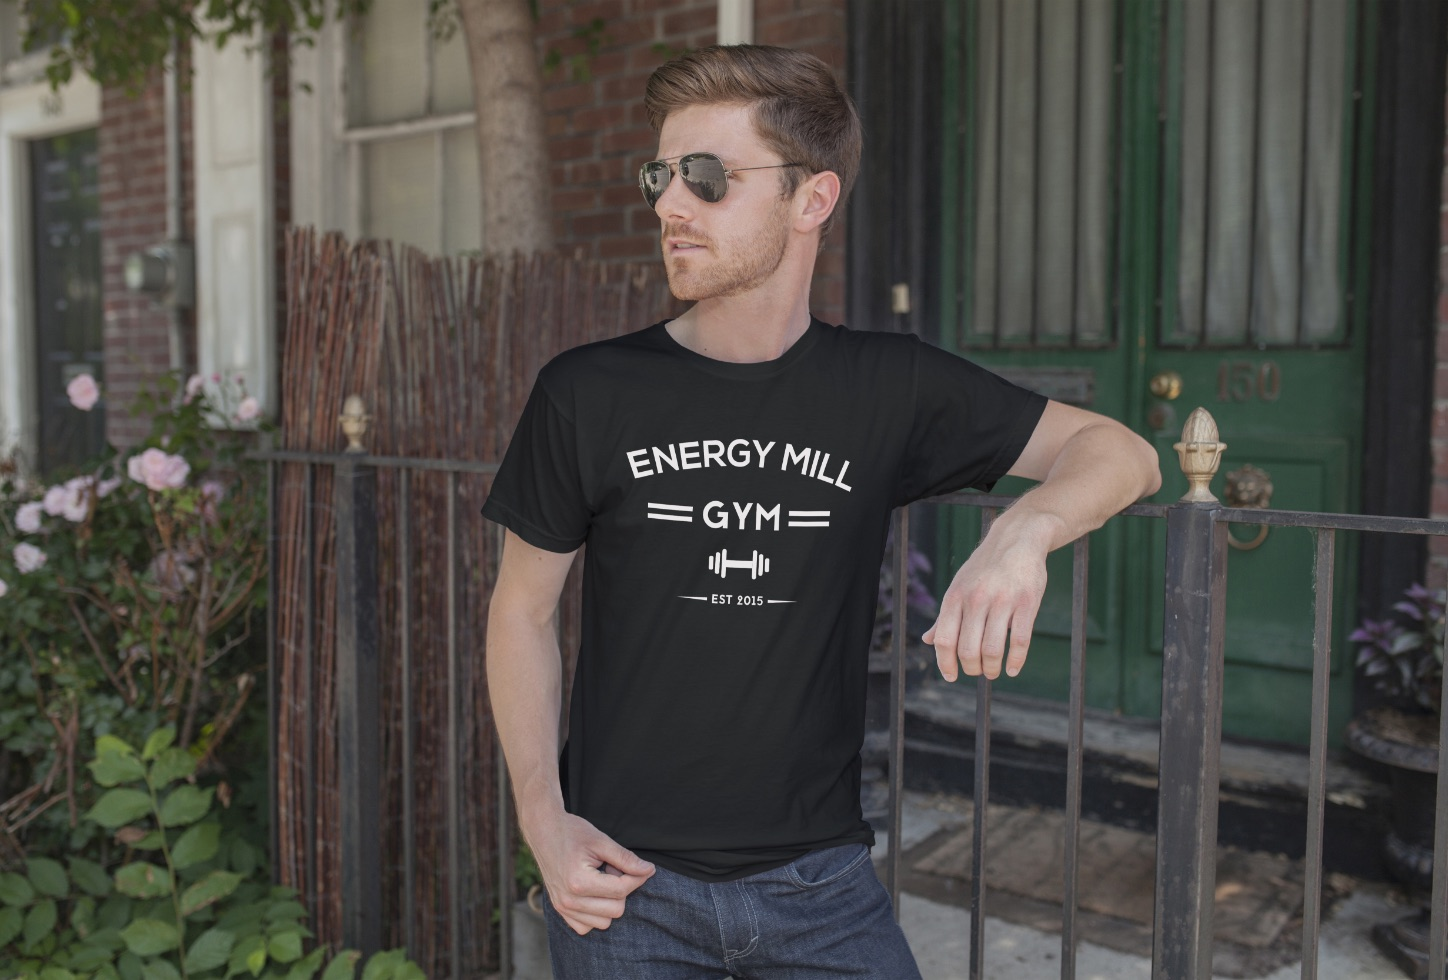 Man posing in an Energy Mill T-Shirt